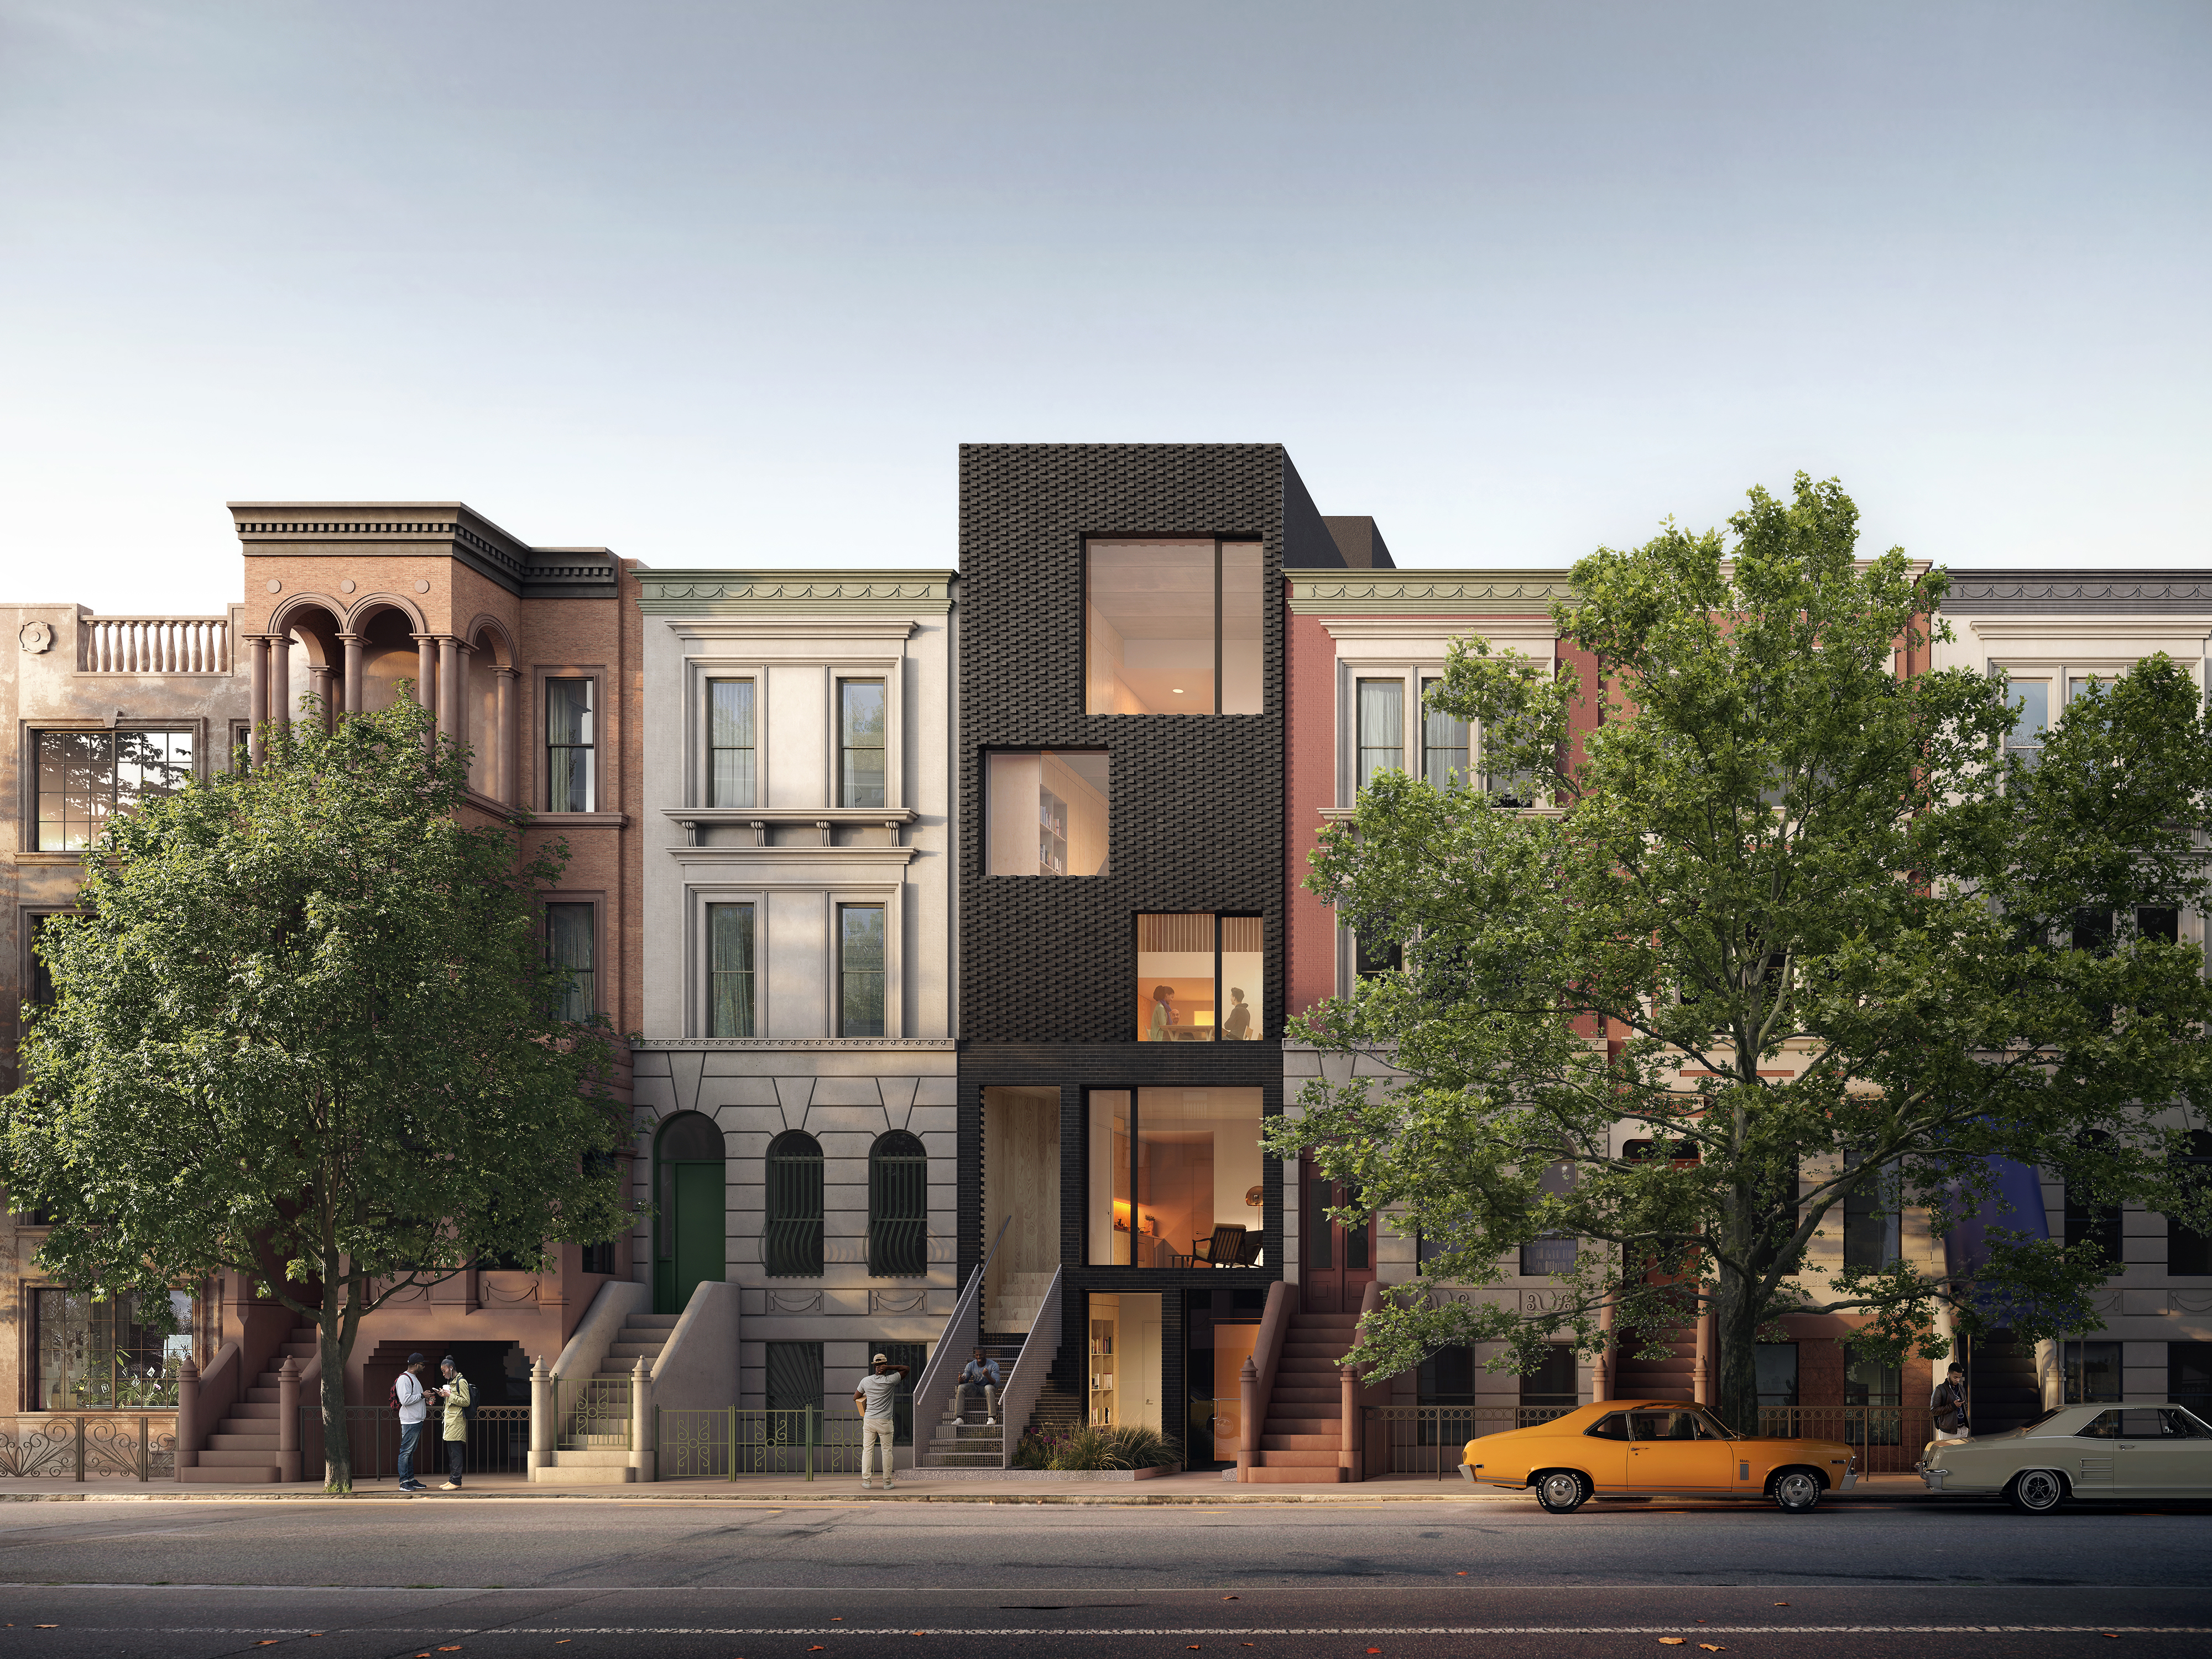 A rendering of an apartment building with a black facade and square windows, situated in the middle of a block surrounded by older apartment buildings.